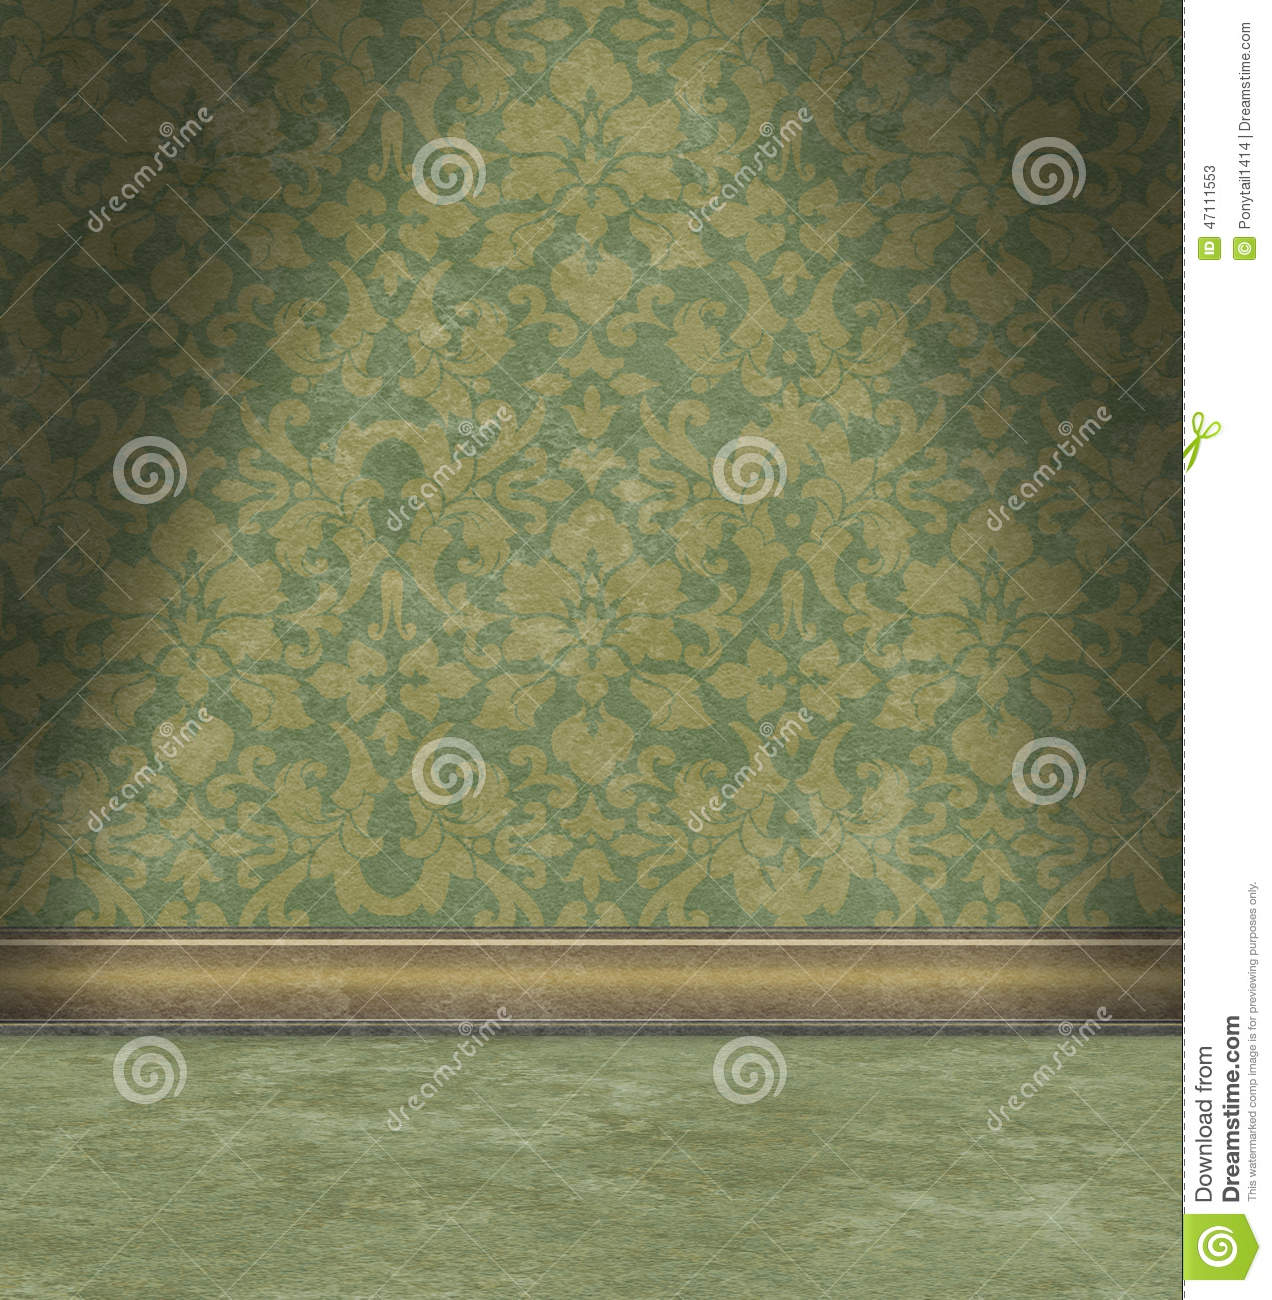 Empty Room With Faded Green Damask Wallpaper